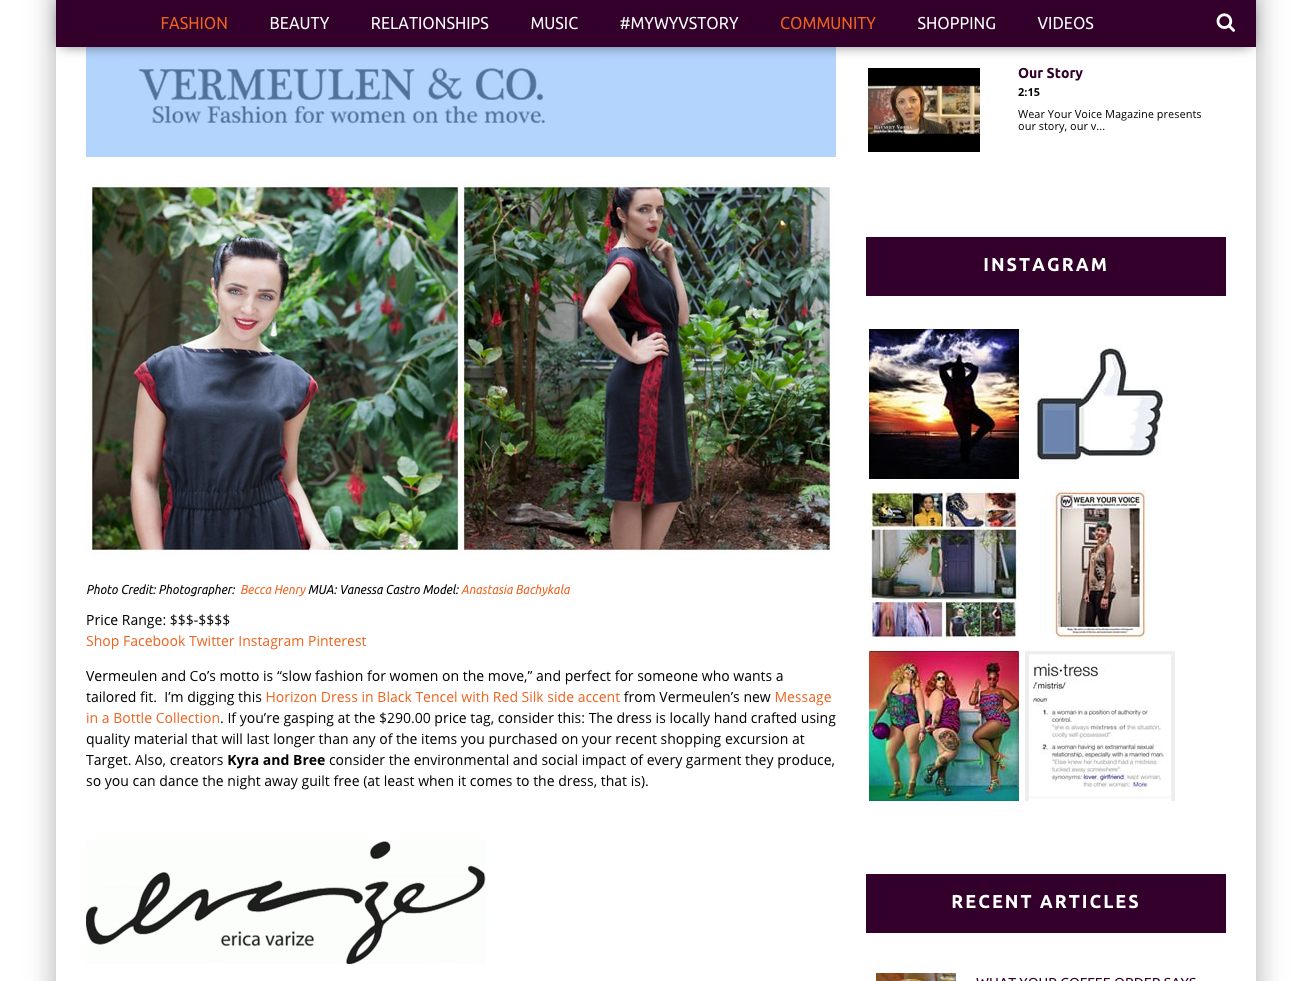 Becca Henry Fashion Photography - Article about Vermeulen& Co